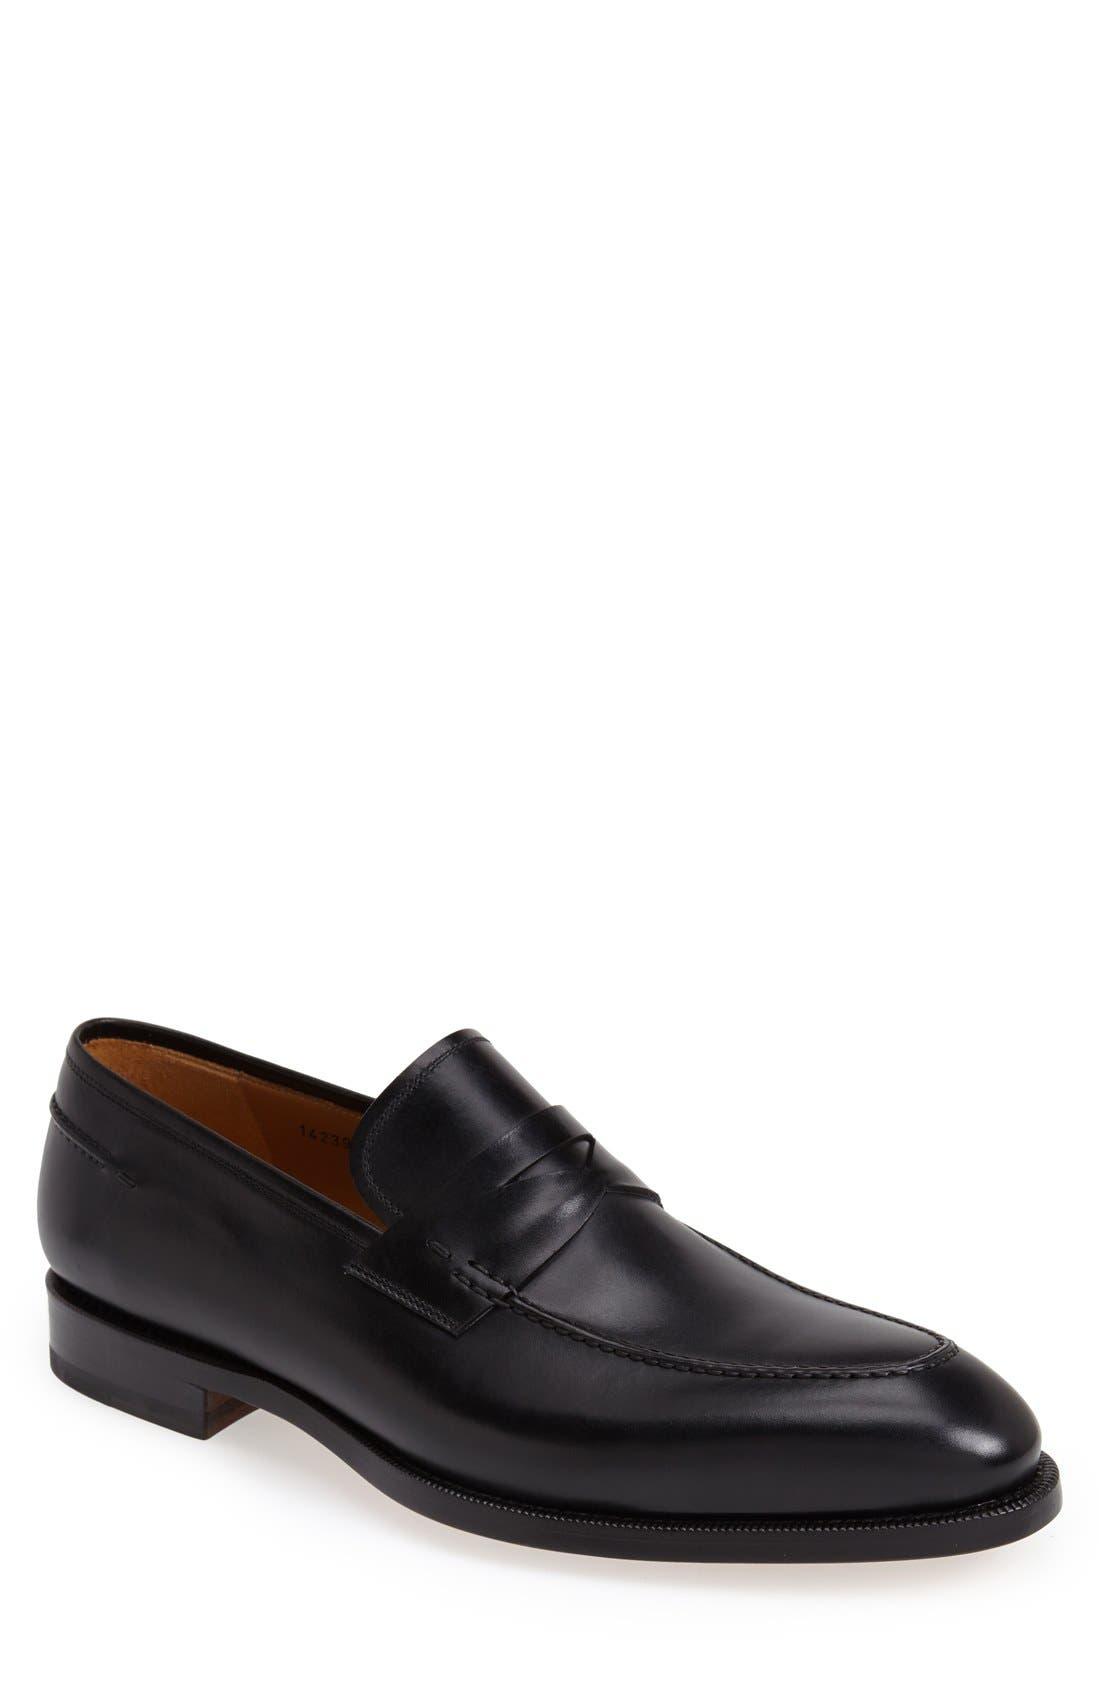 Main Image - Magnanni 'Tevio' Penny Loafer (Men) (Online Only)